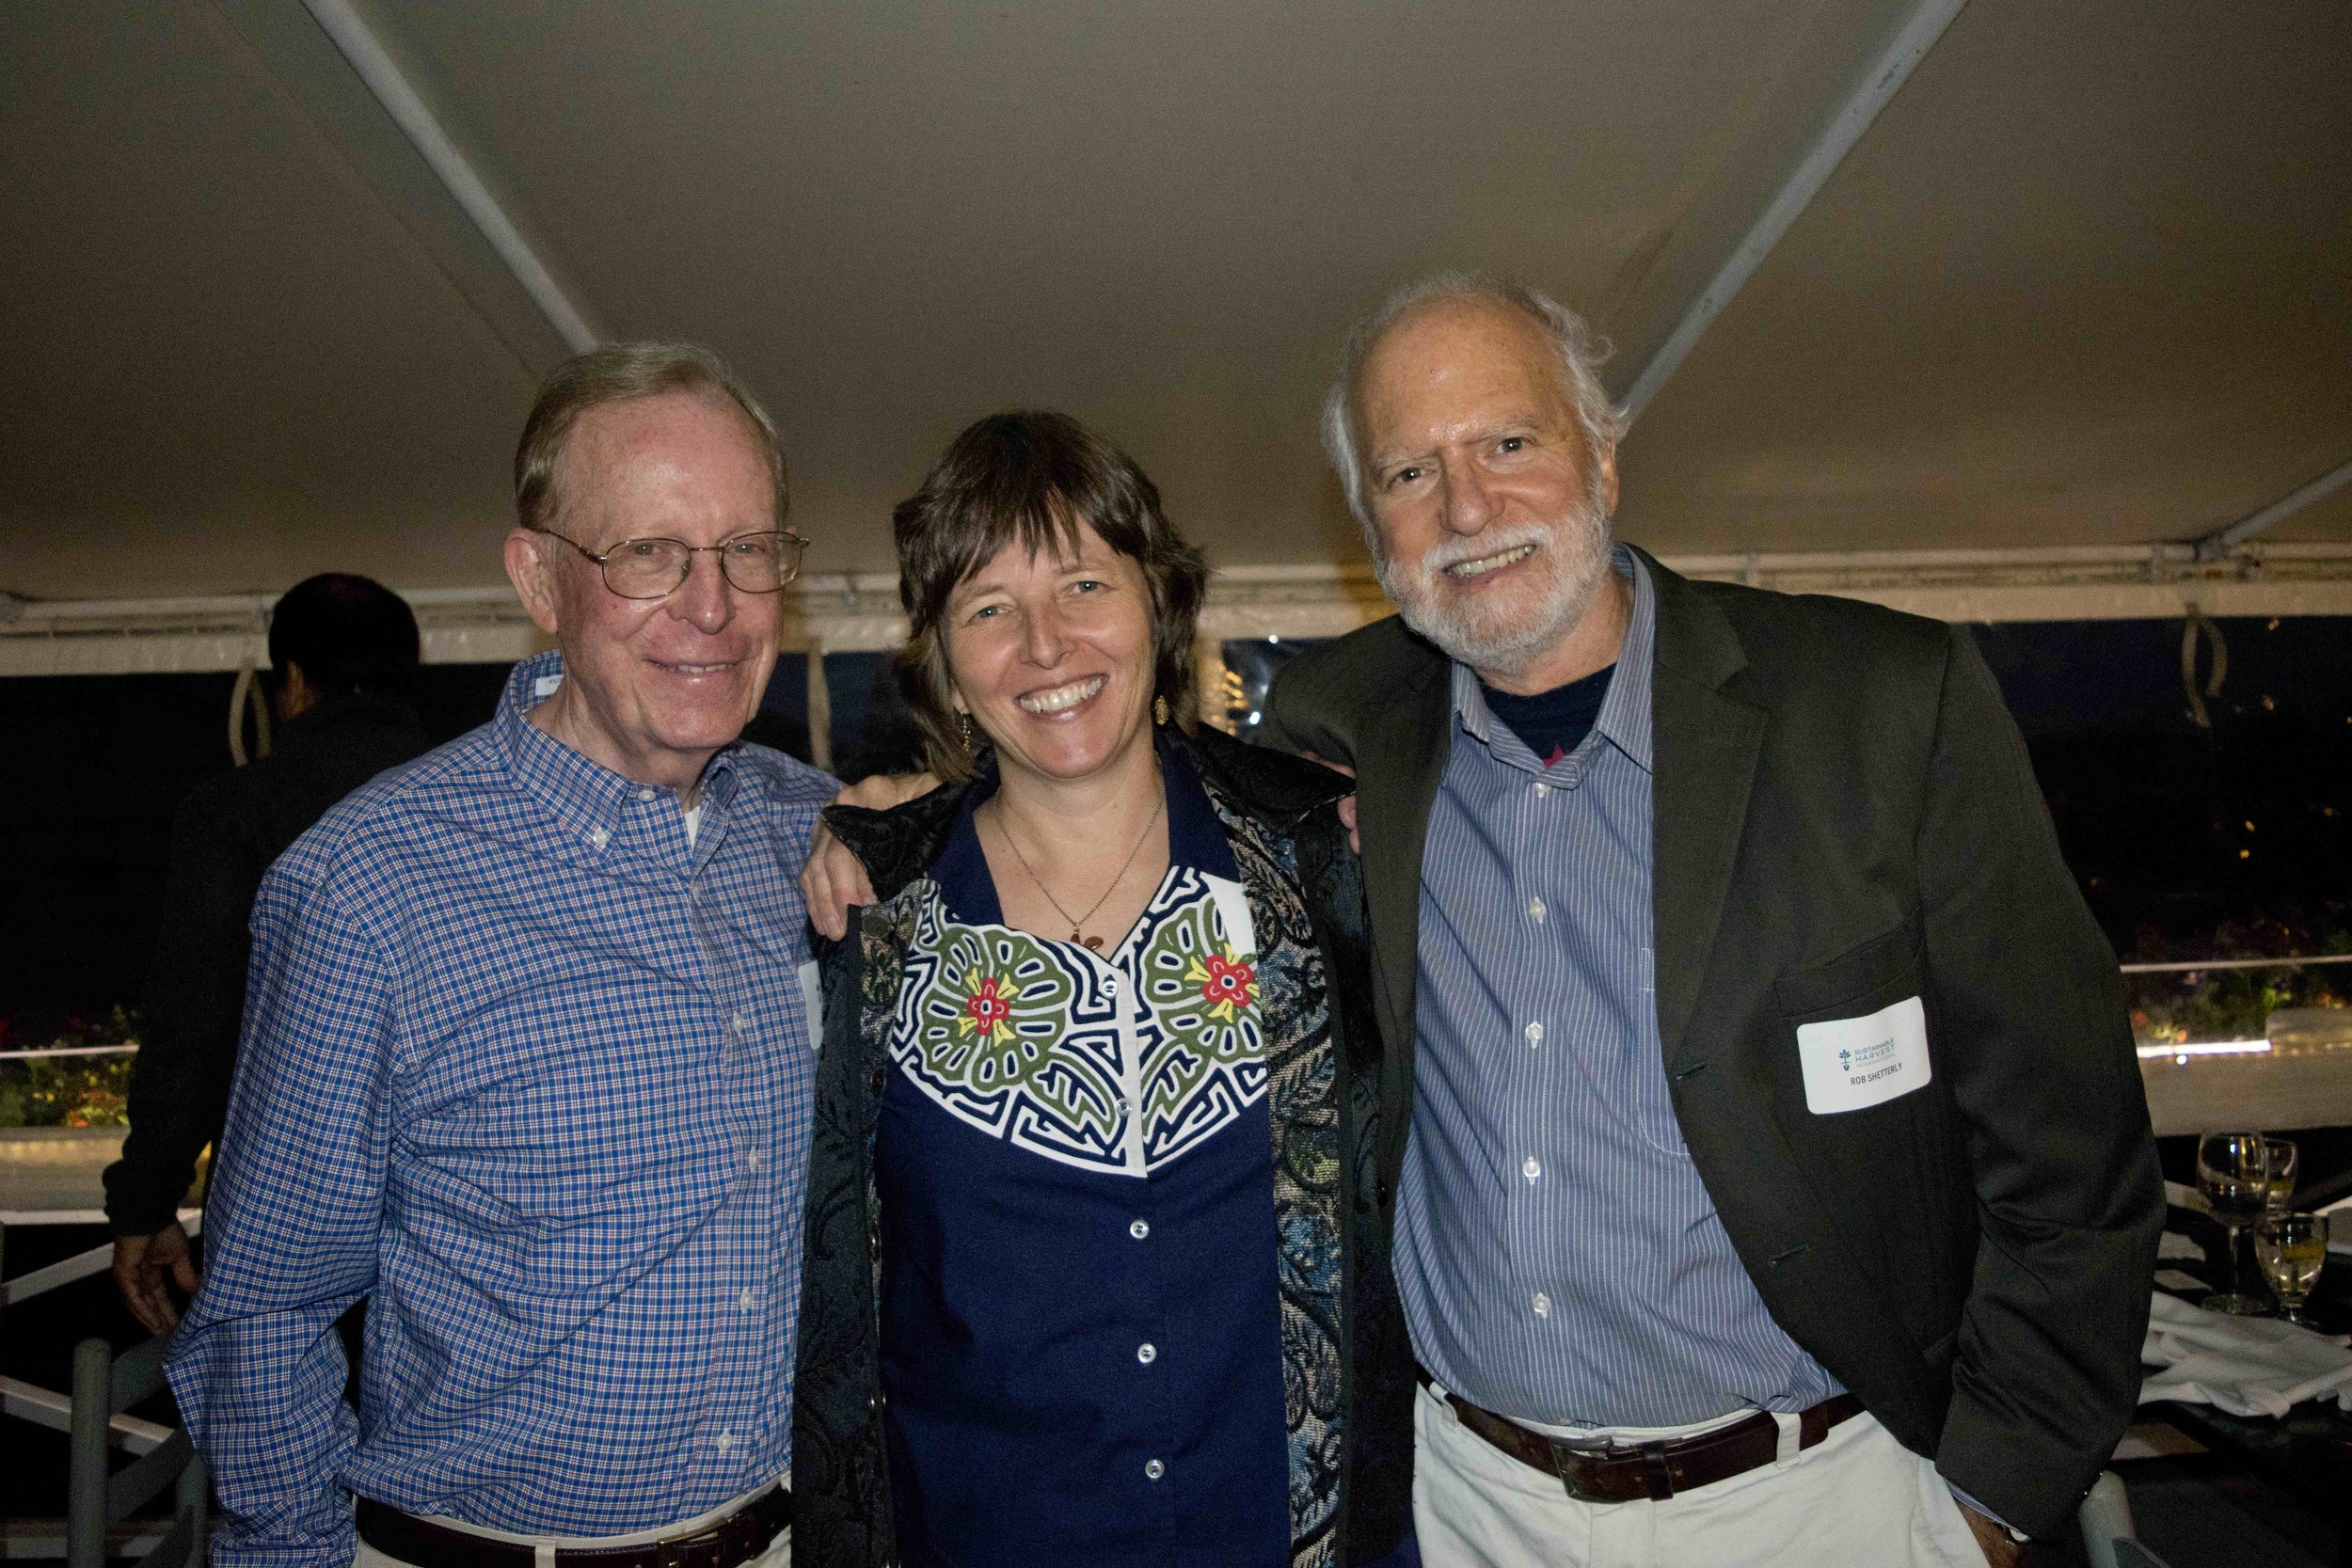 Steve Richards (Sustainable Harvest International Board Chair), Florence Reed (Sustainable Harvest International Founder + President), and Robert Shetterly (artist and activist)